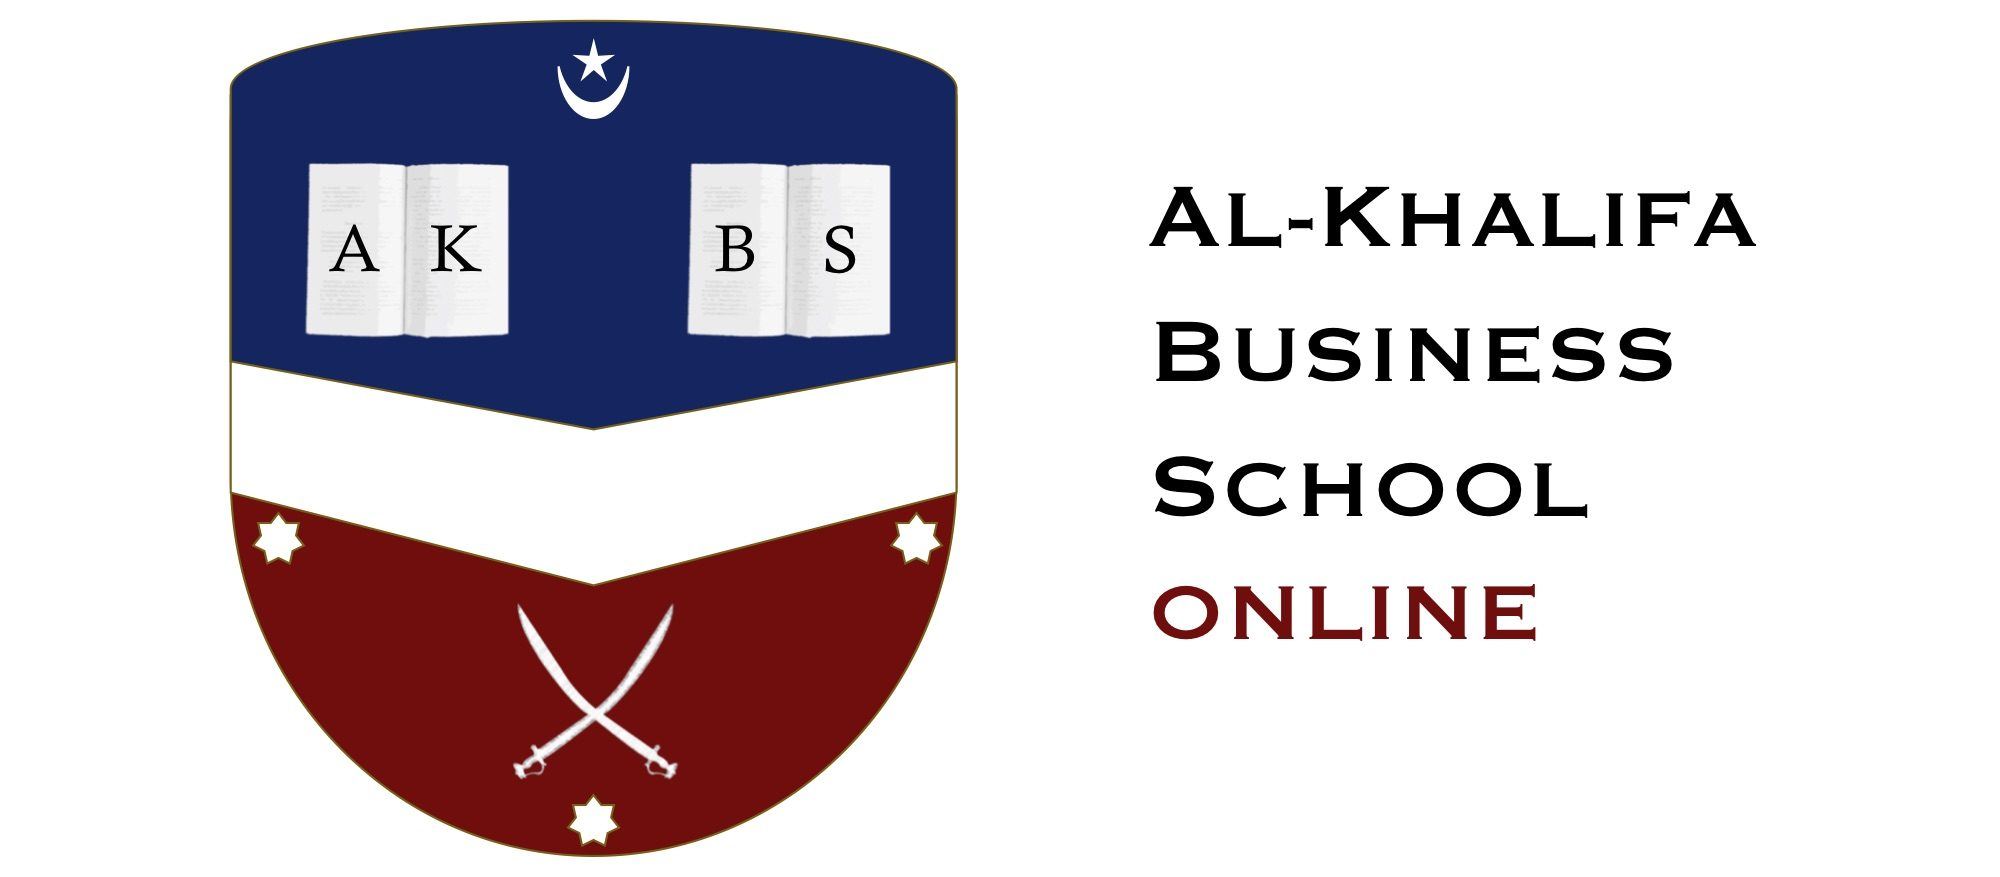 Al-Khalifa Business School